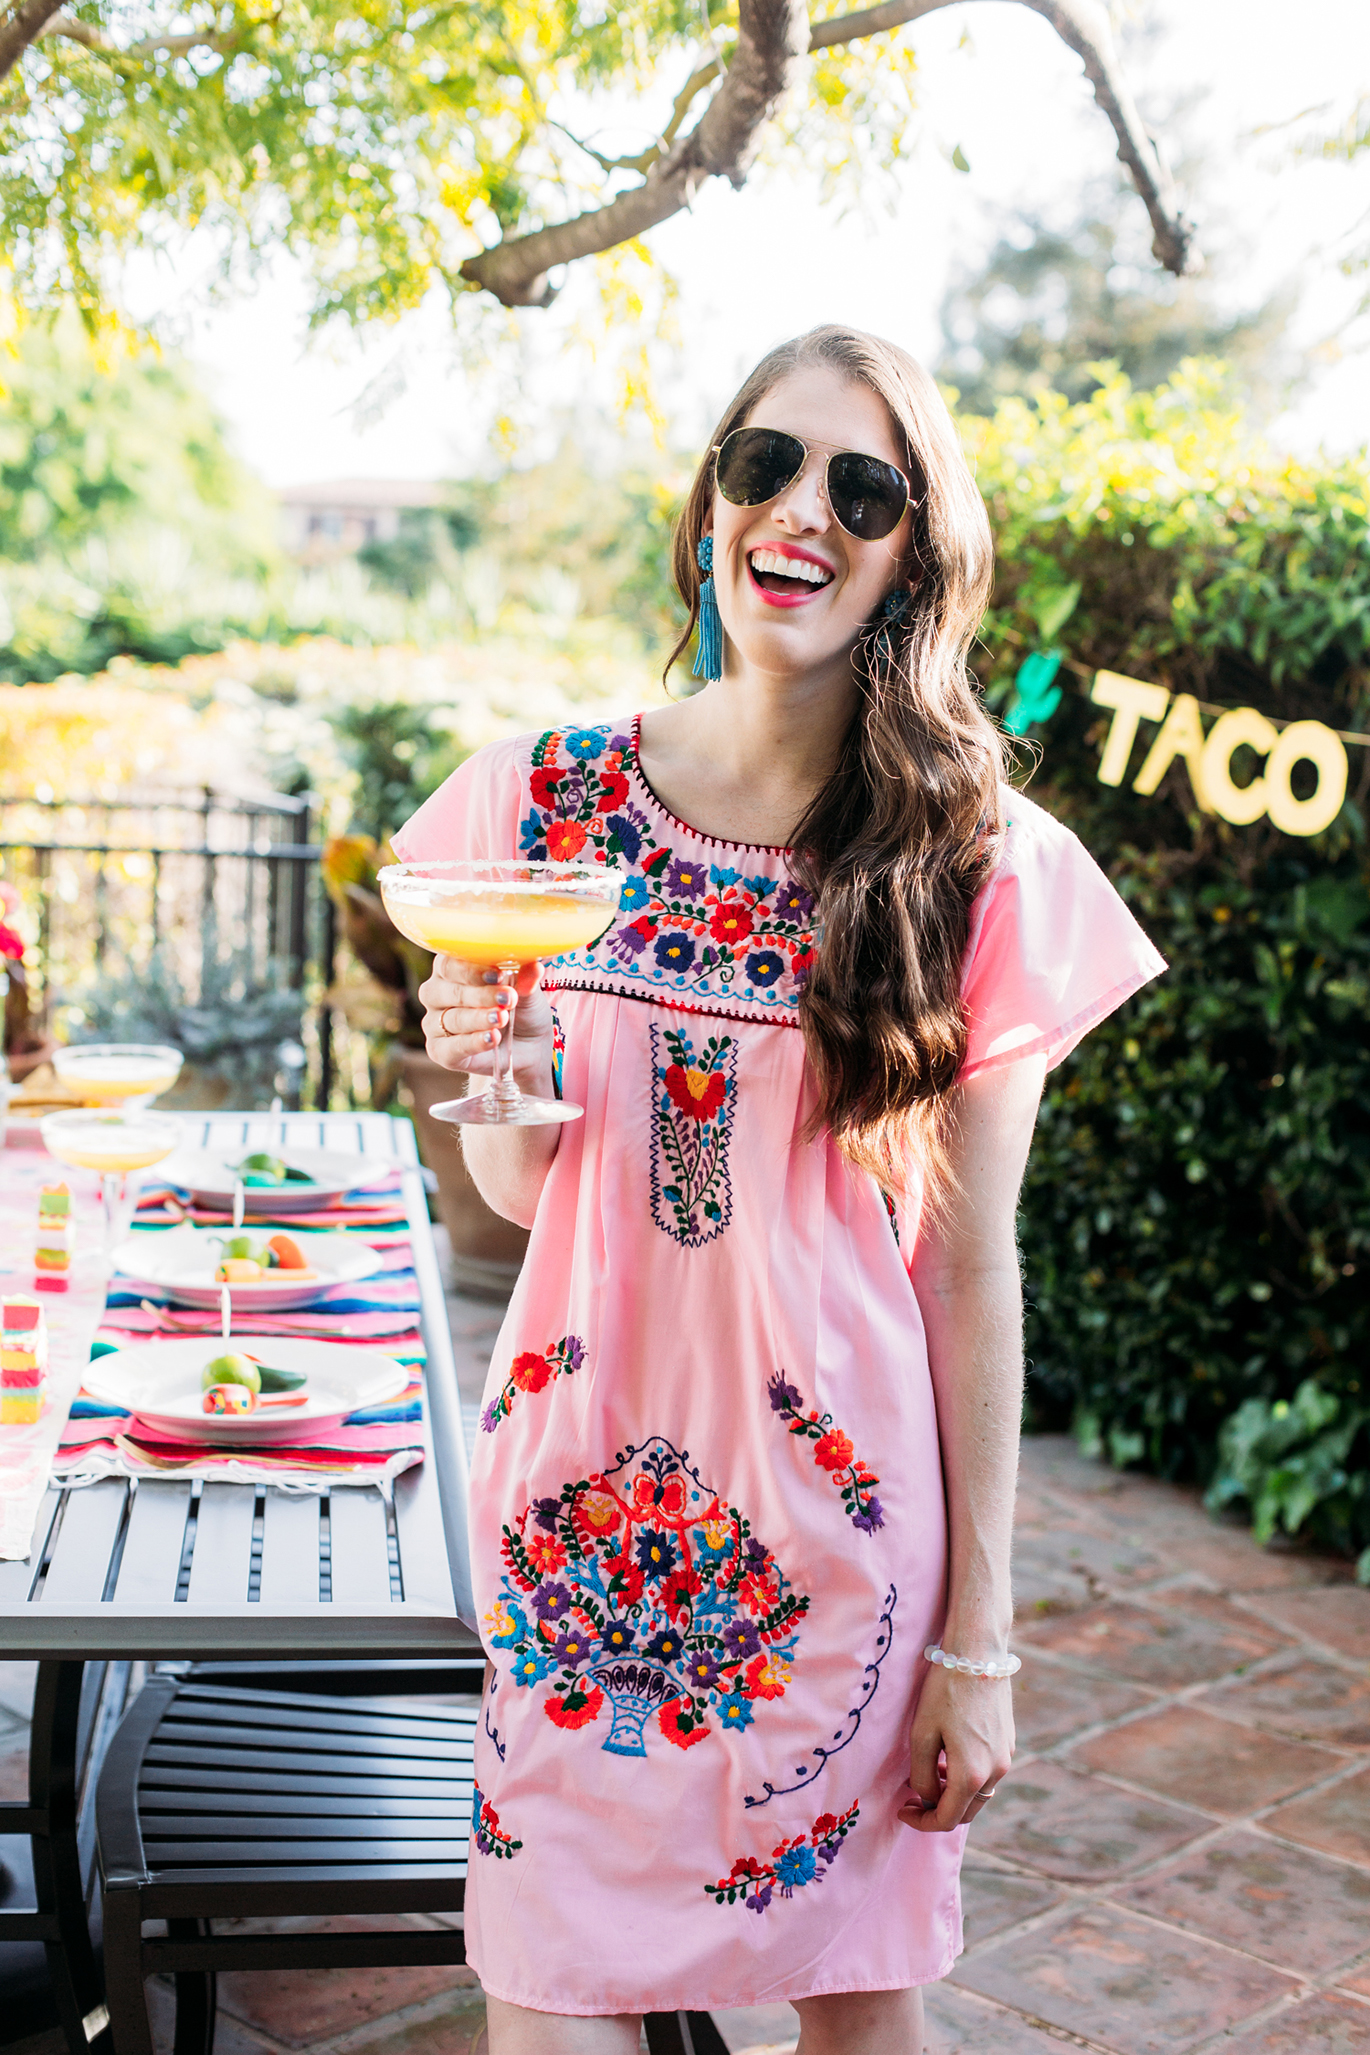 What to wear to a Cinco de Mayo party